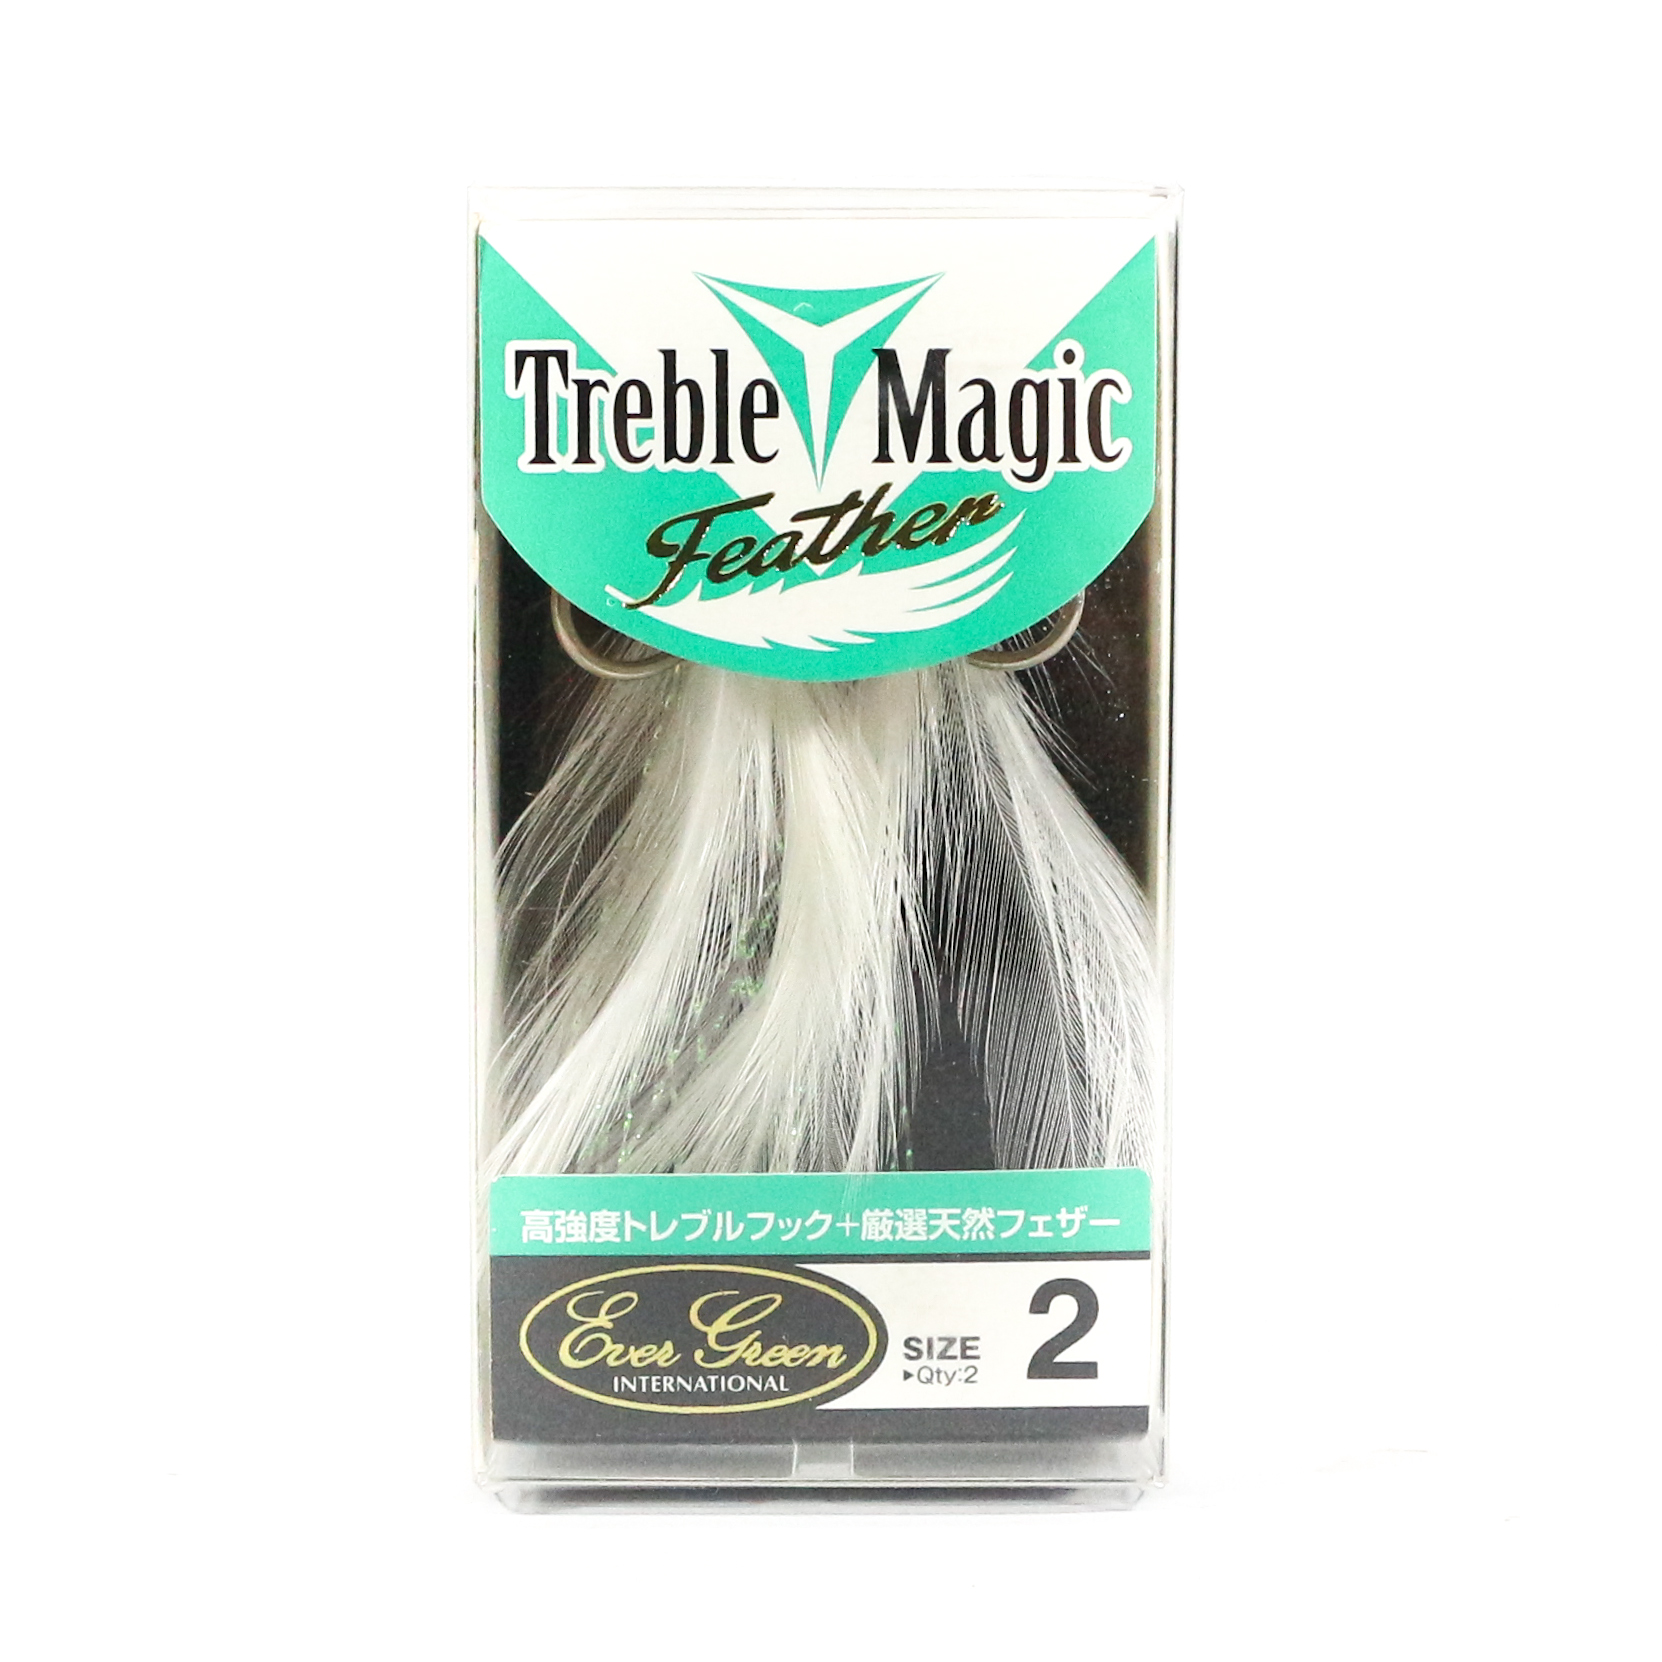 Evergreen Treble Hooks Treble Magic Feather Size 2 (0887)